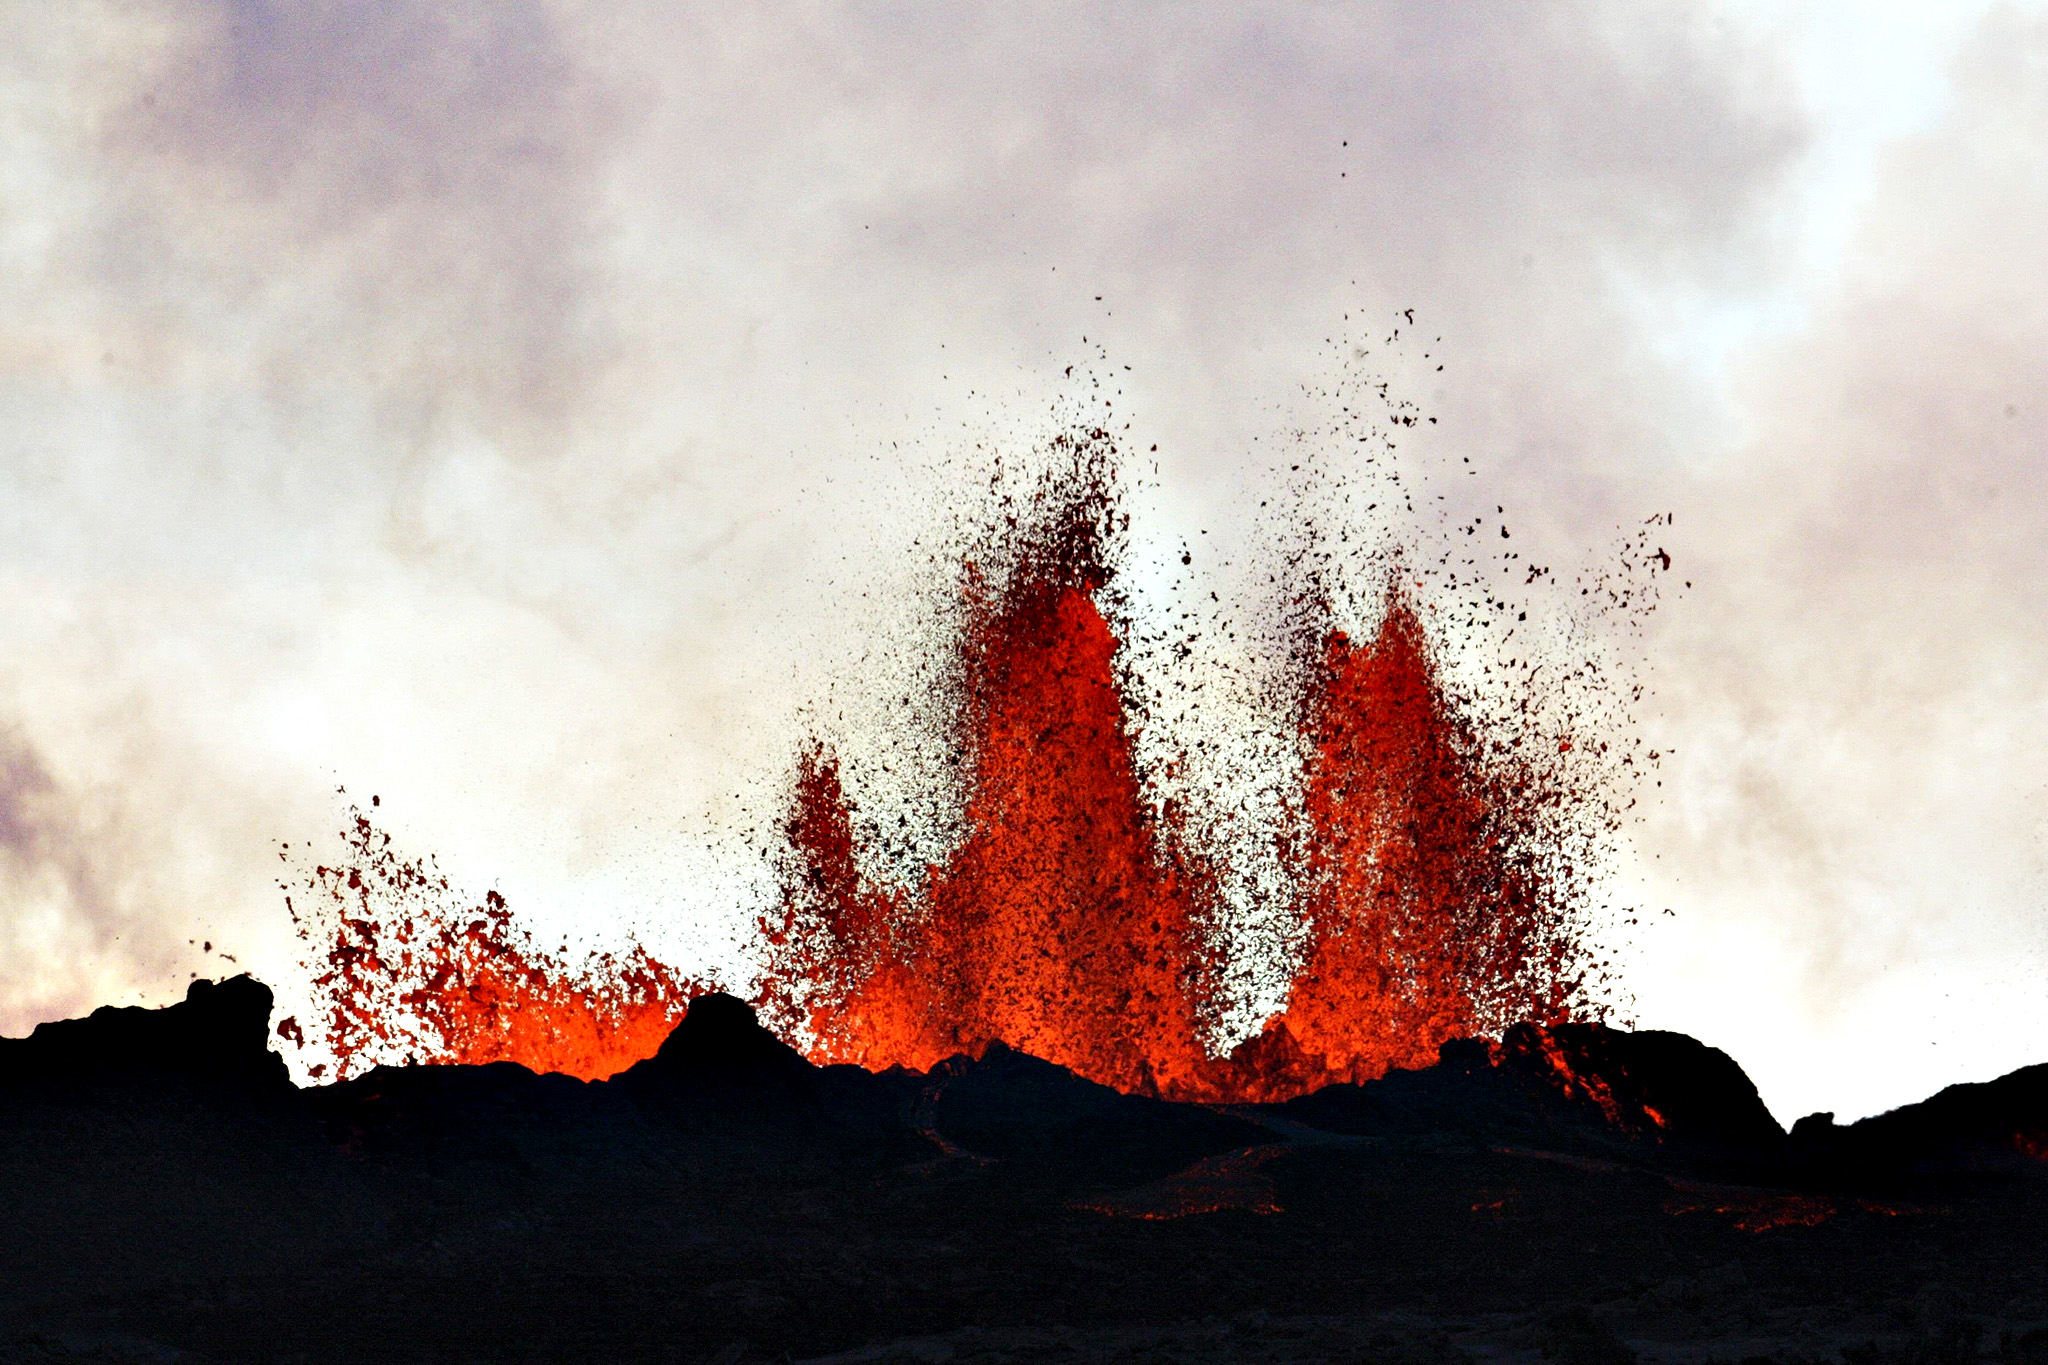 Lava fountains are pictured at the site of a fissure eruption near Iceland's Bardarbunga volcano September 2, 2014. A fissure eruption near Iceland's Bardarbunga volcano was still spouting lava on Monday but no ash, a day after an eruption that briefly caused the country to raise its ash alert level for aviation to its highest level. Iceland's largest volcanic system - 190 km long and up to 25 km wide (118 miles by 15.5 miles) - has been hit by thousands of earthquakes over the last two weeks, putting scientists have been on high alert.